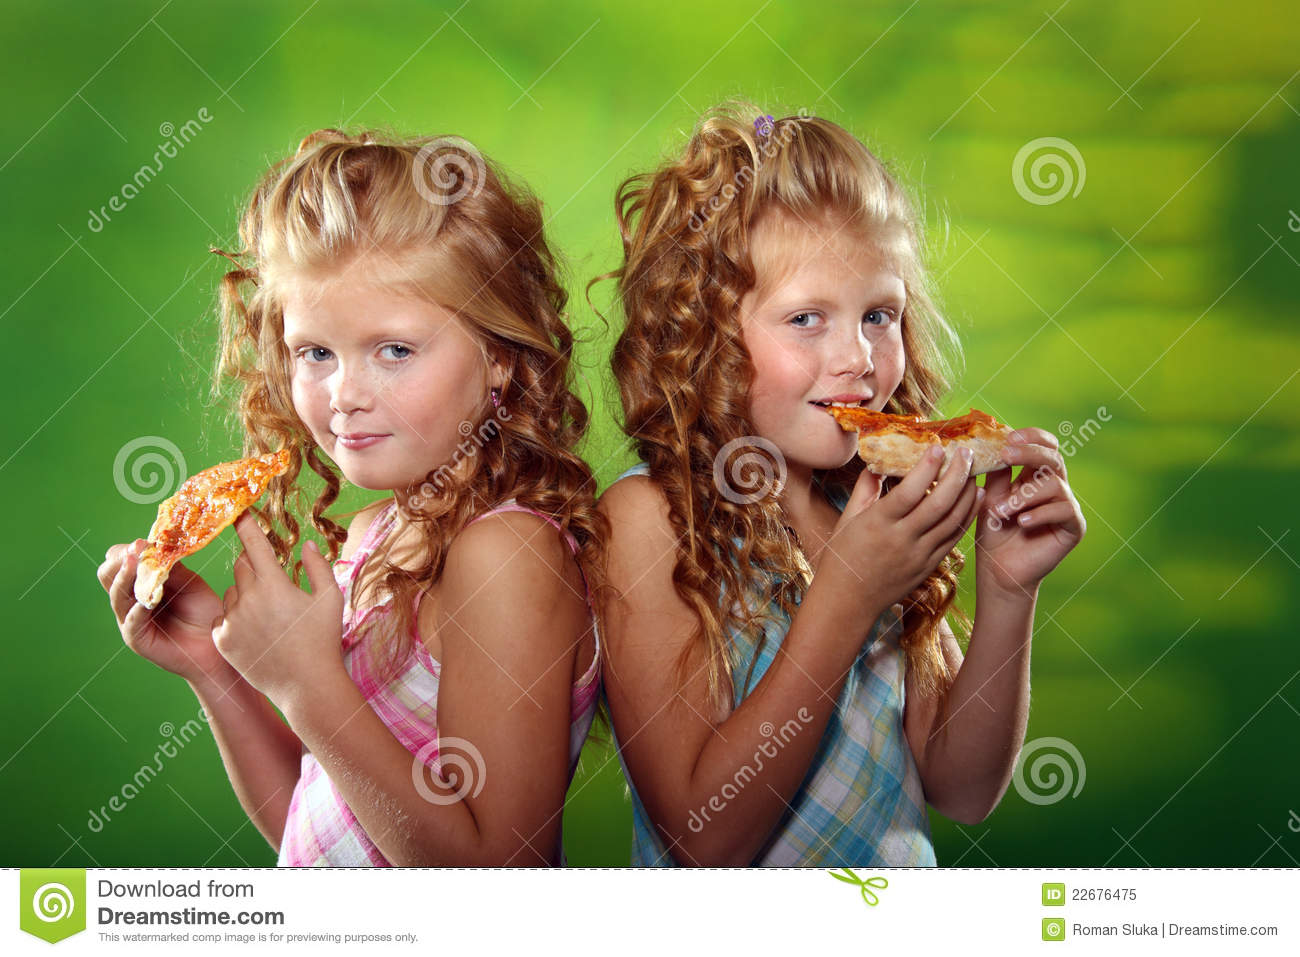 Cute Twin Girls Eating Pizza Royalty Free Stock Photo